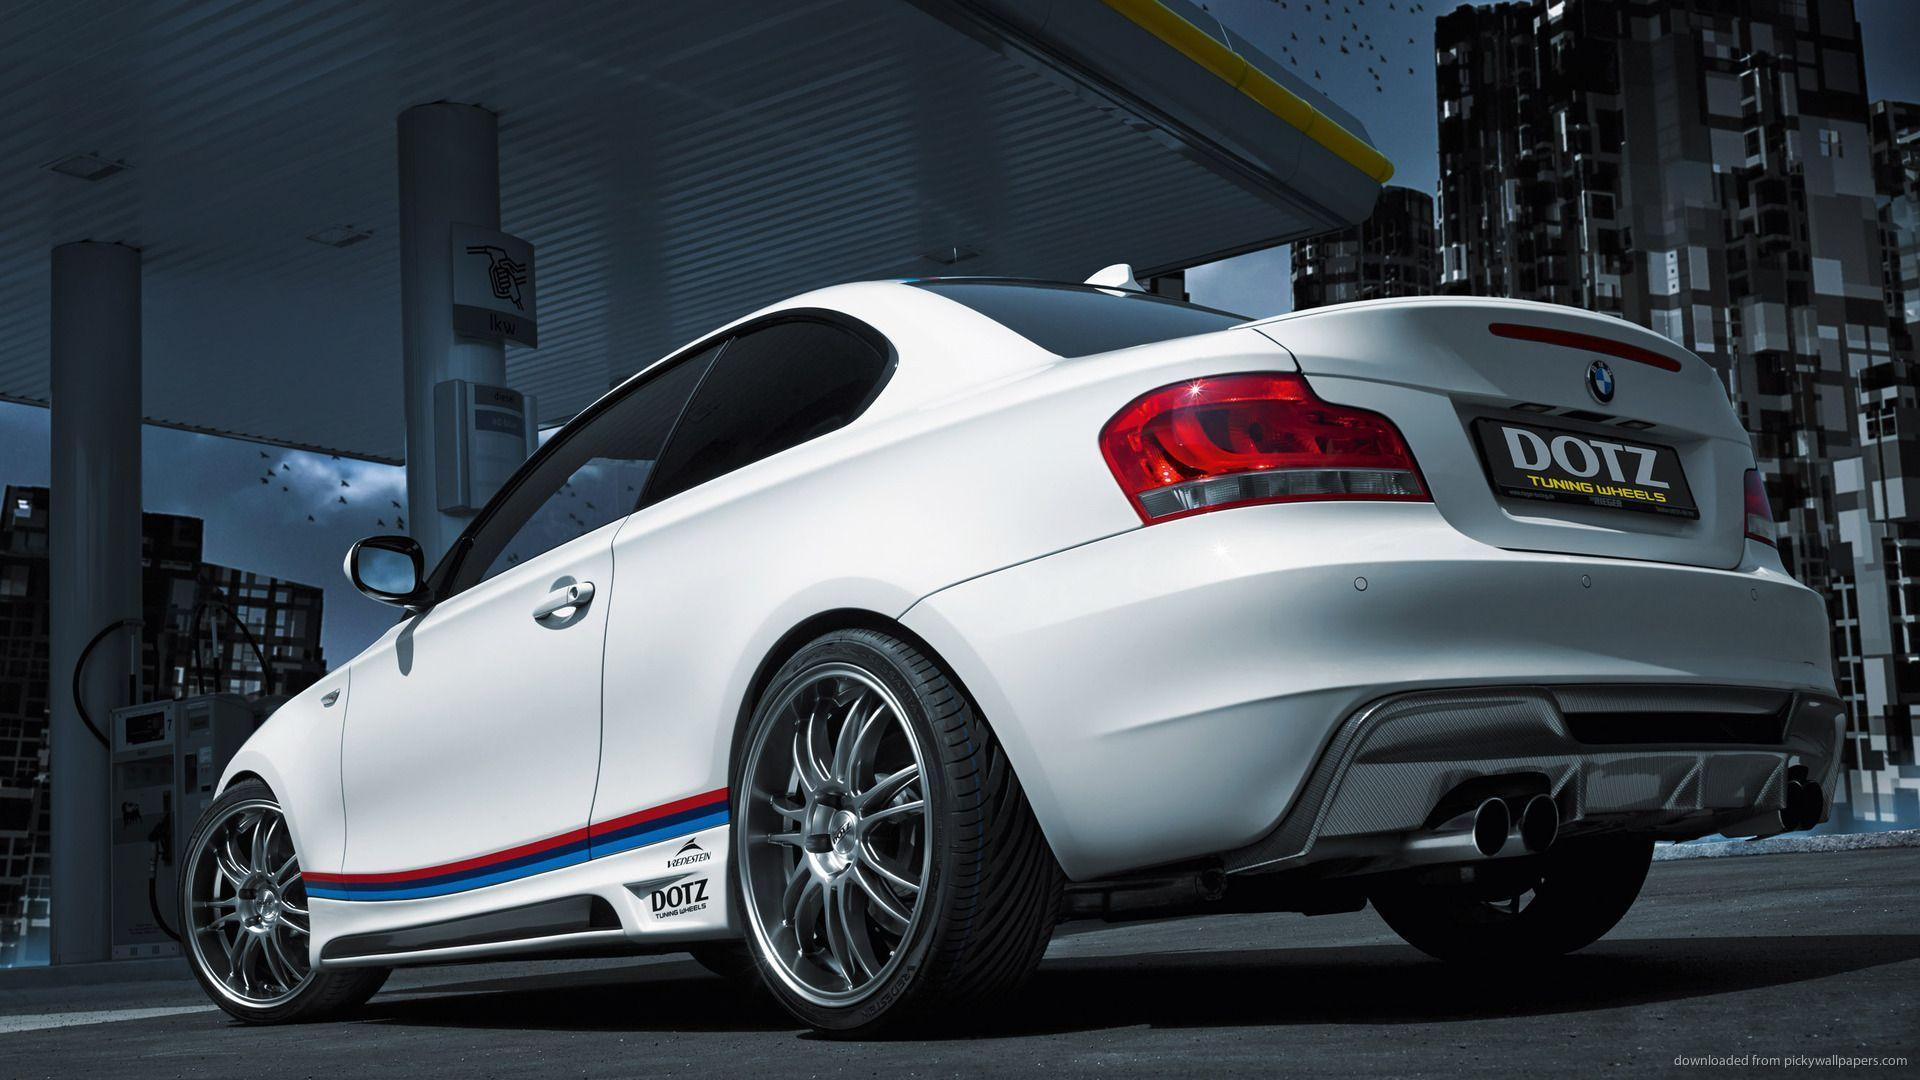 BMW Concept M i Front Wallpaper x | HD Wallpapers | Pinterest | BMW ...